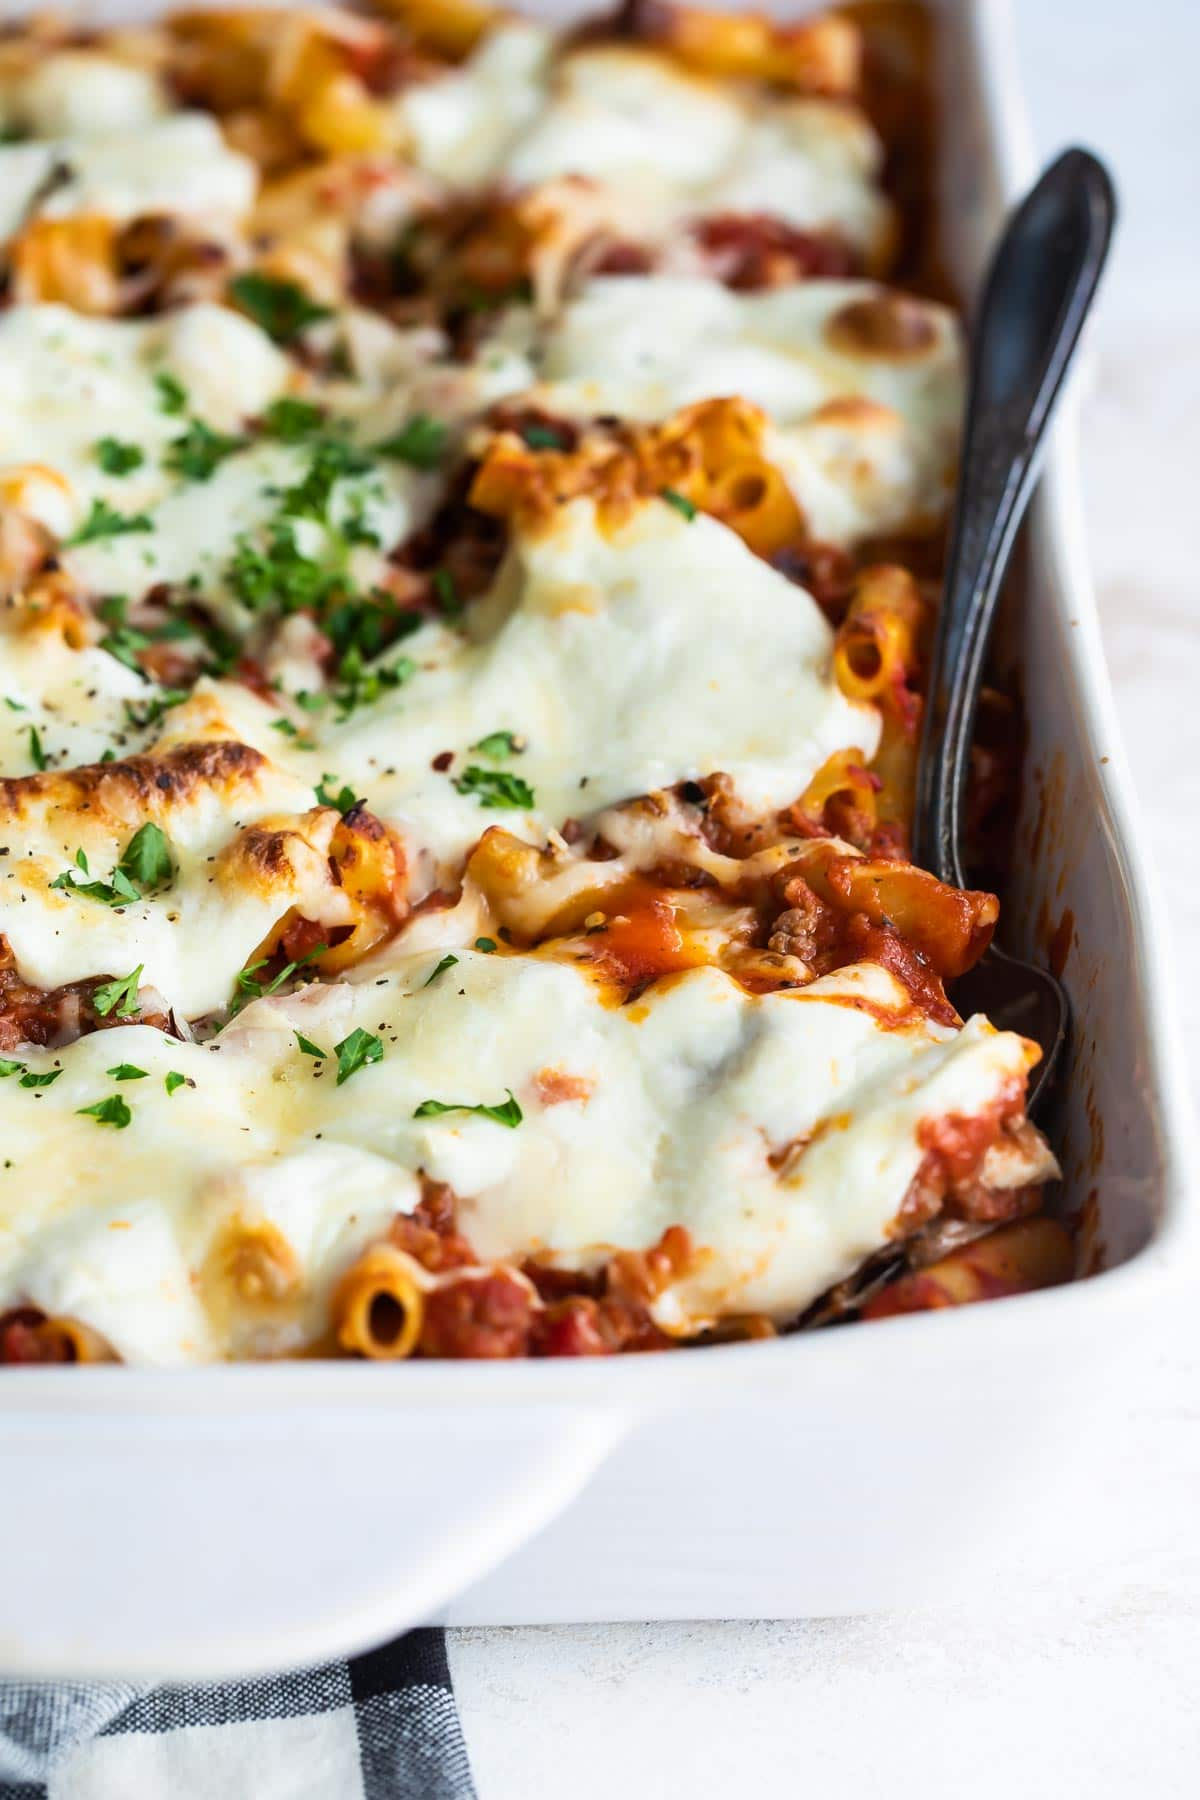 A pan of baked ziti with a spoon in it.